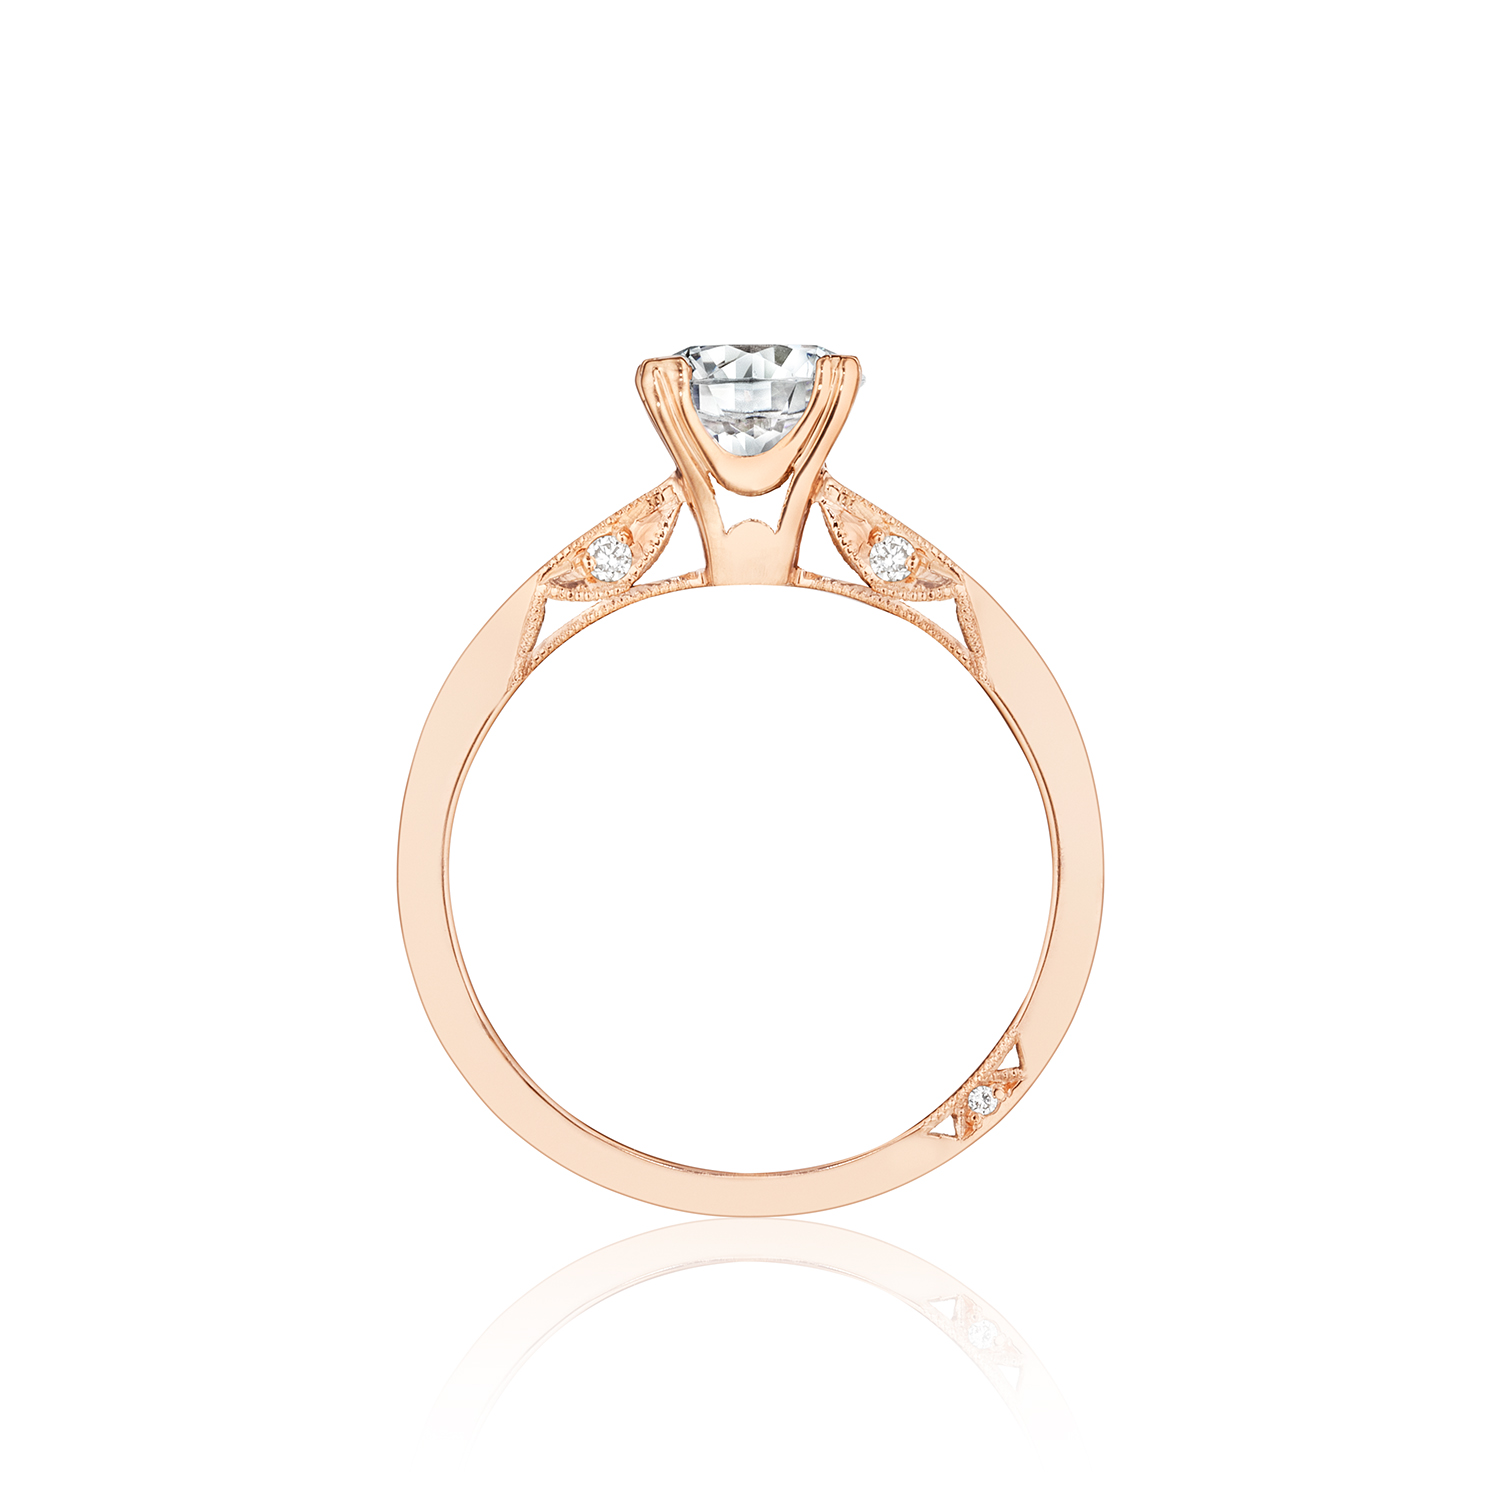 upscale product engagement wedding rose tiffany a harmony with diamond false band ring central matching rings in scale solitaire gold crop shop subsampling